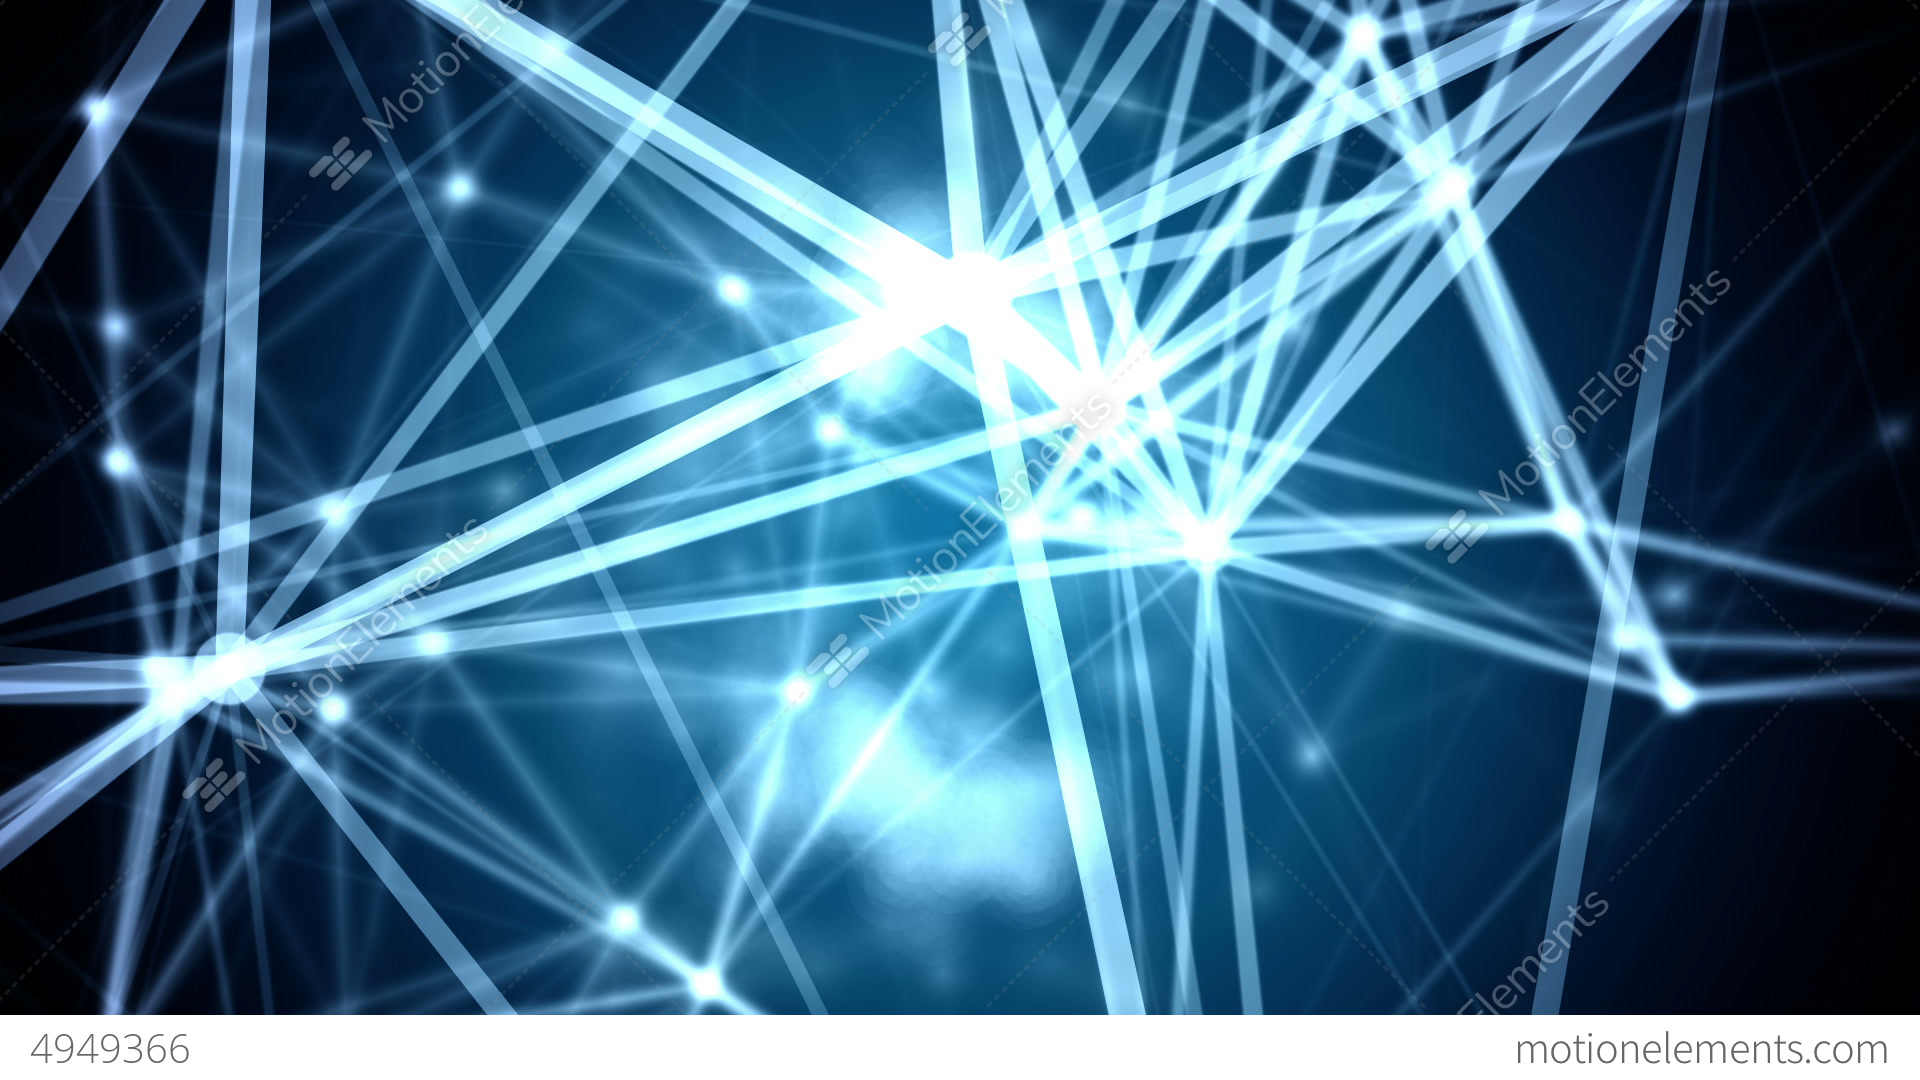 abstract network background - photo #7